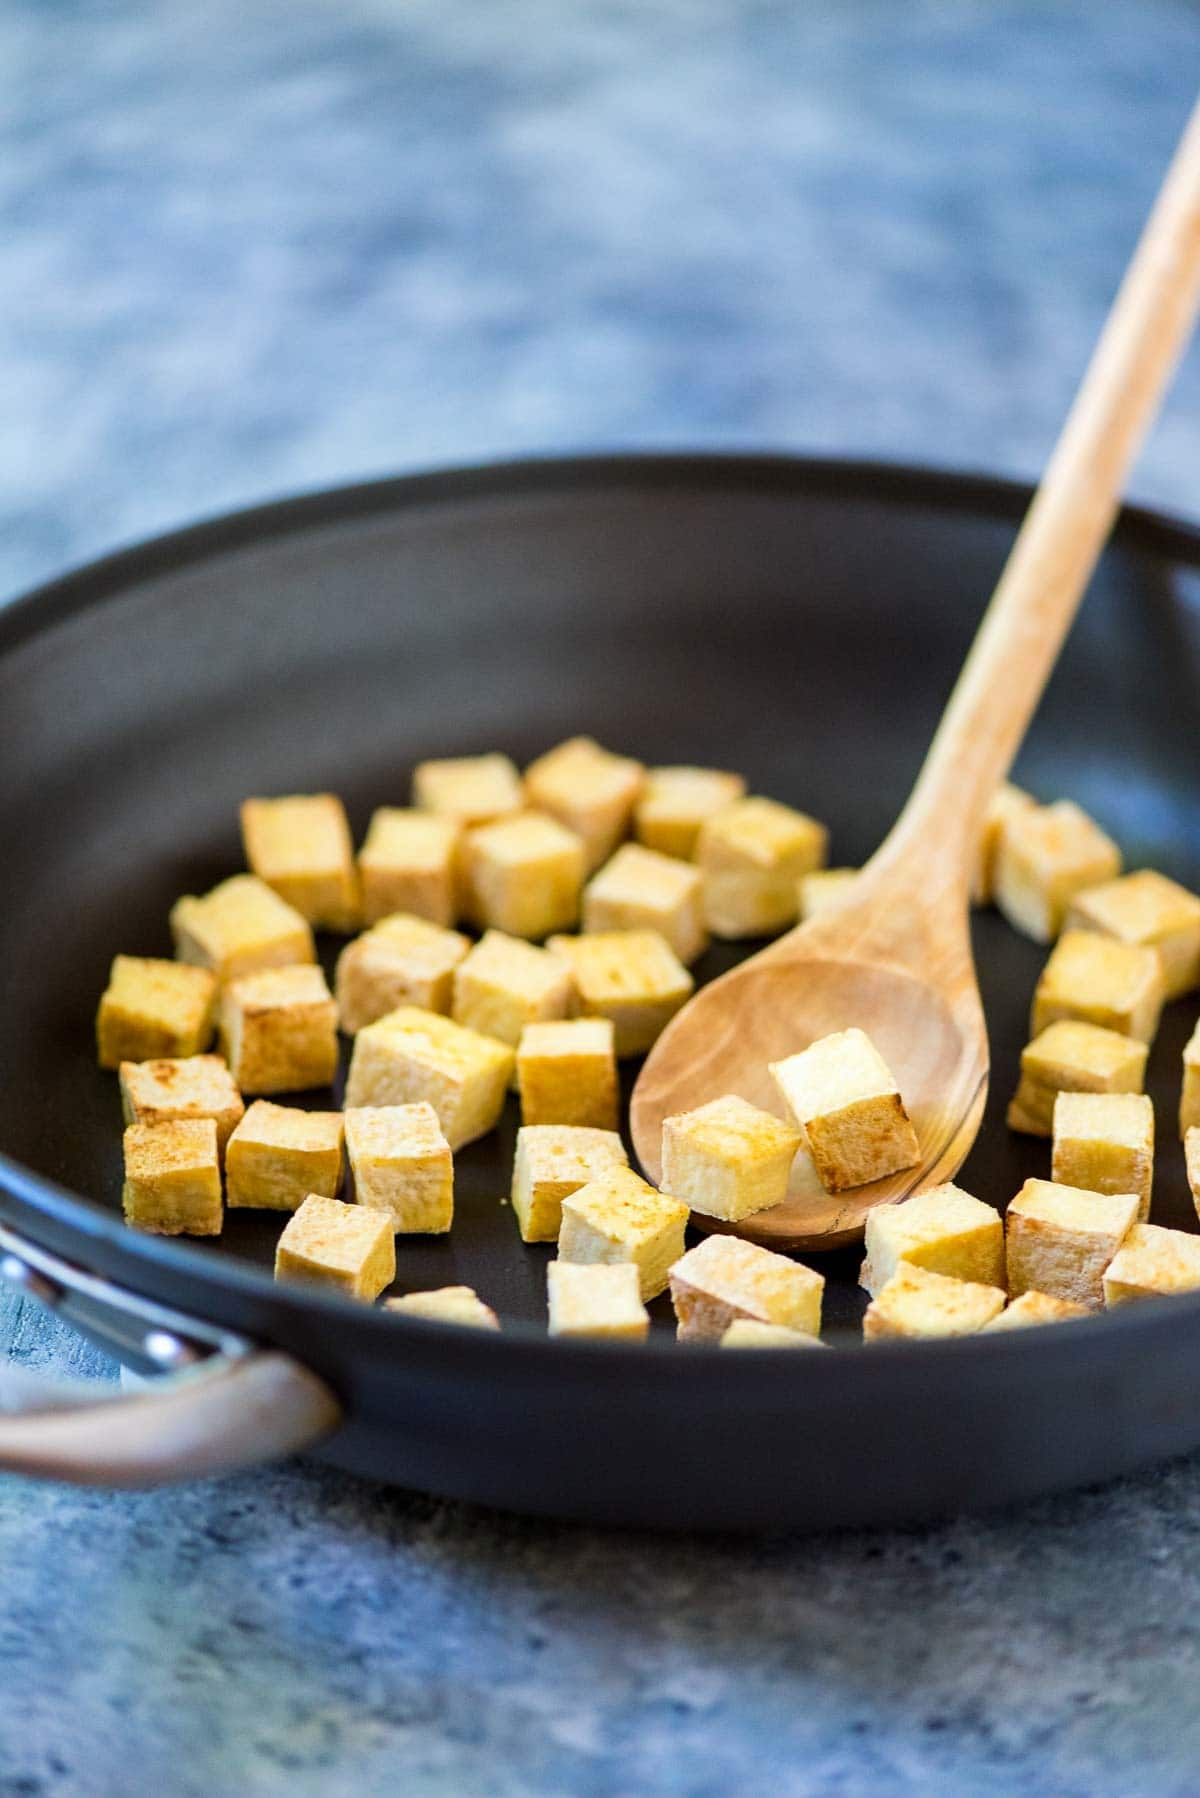 CRISPY Tofu, no baking, deep frying, or pressing required! This one simple trick is all you need. A great way to add tofu to any stir fry, salad, or pasta. Even my meat-eating husband loved it! @wellplated